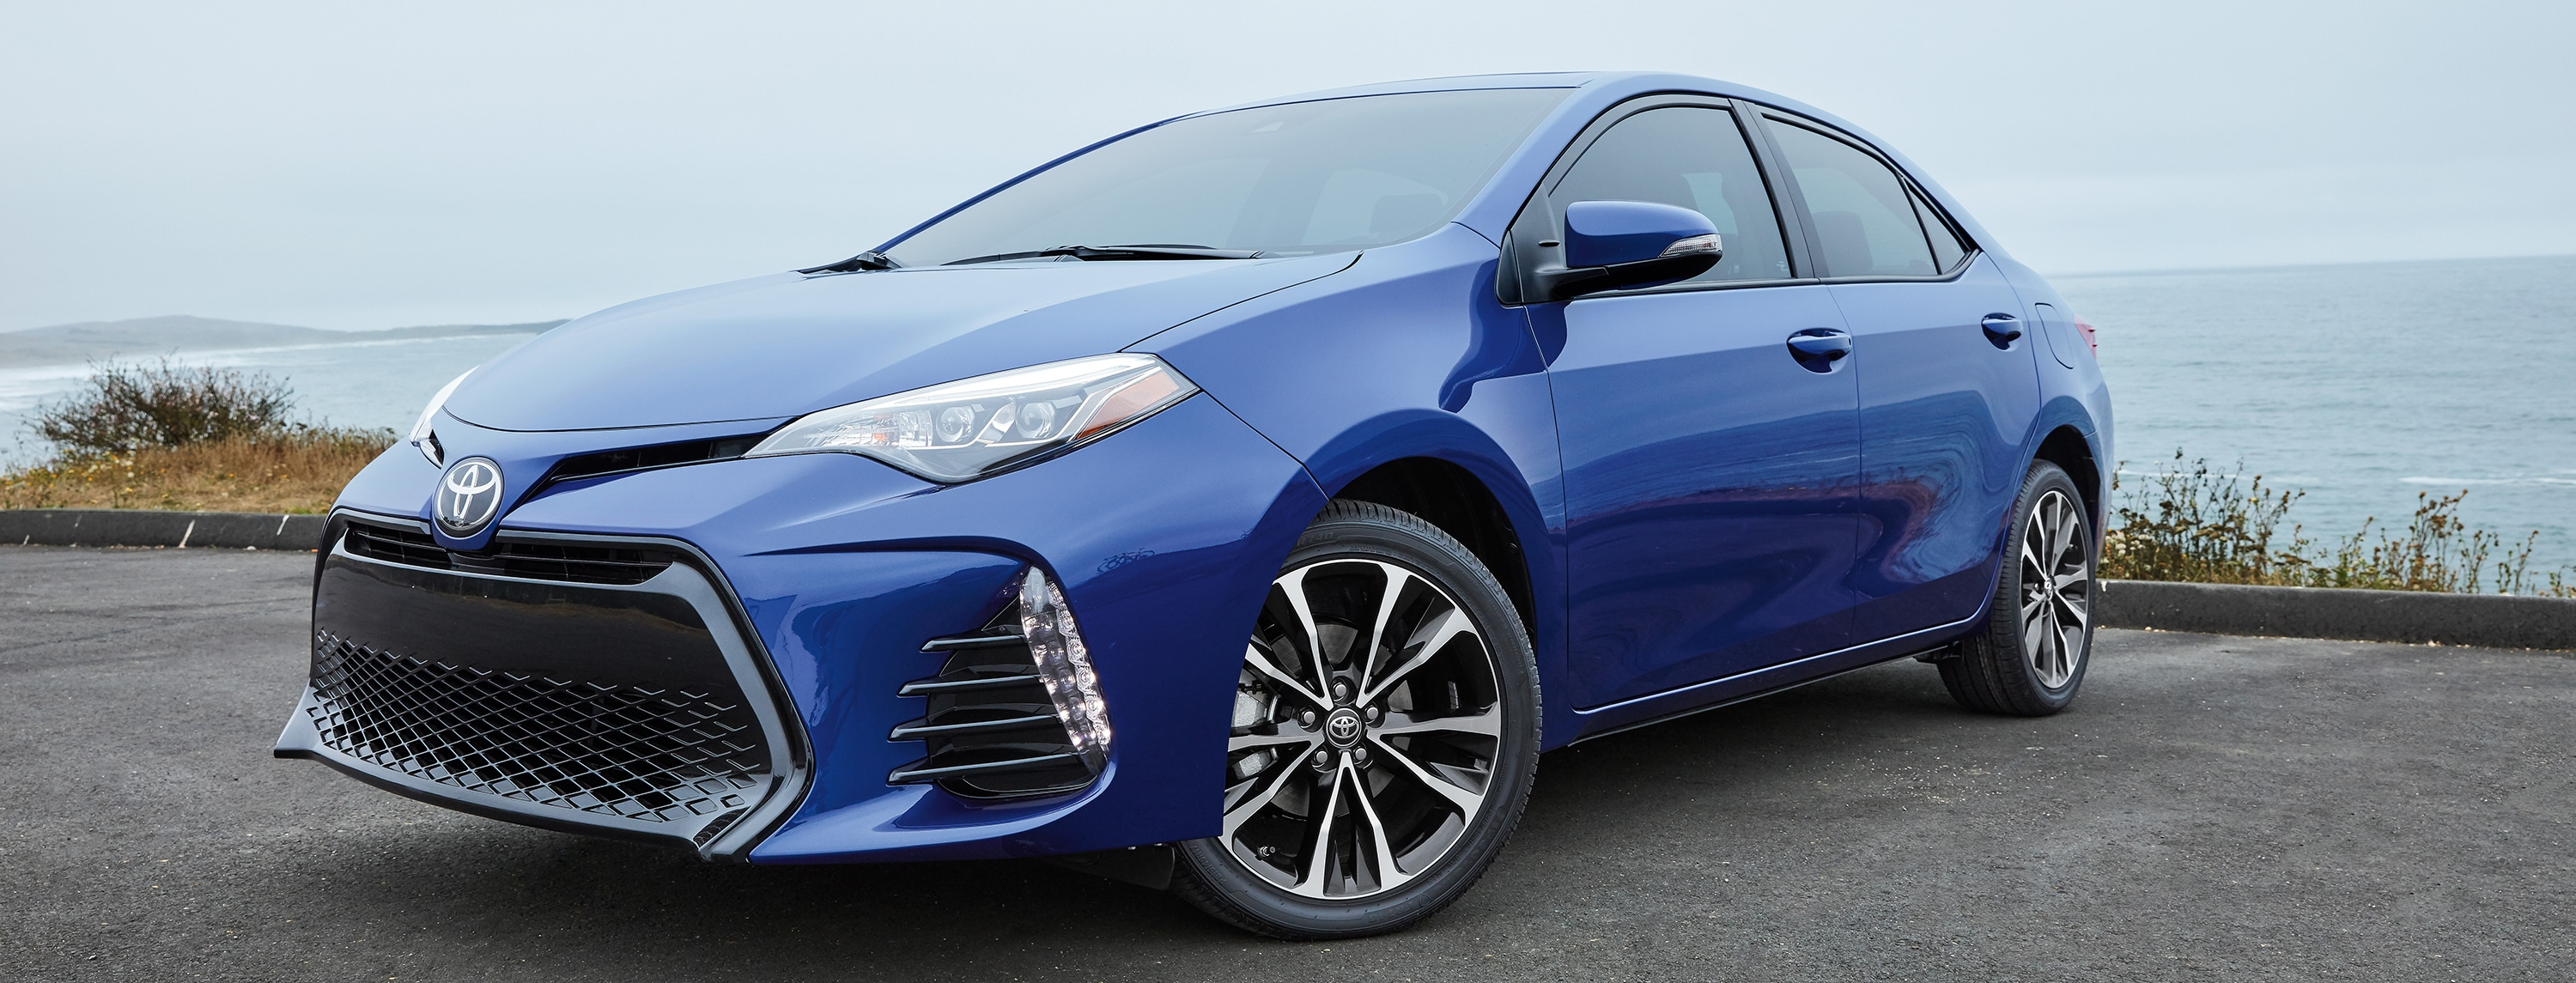 Profile of a blue 2018 Toyota Corolla